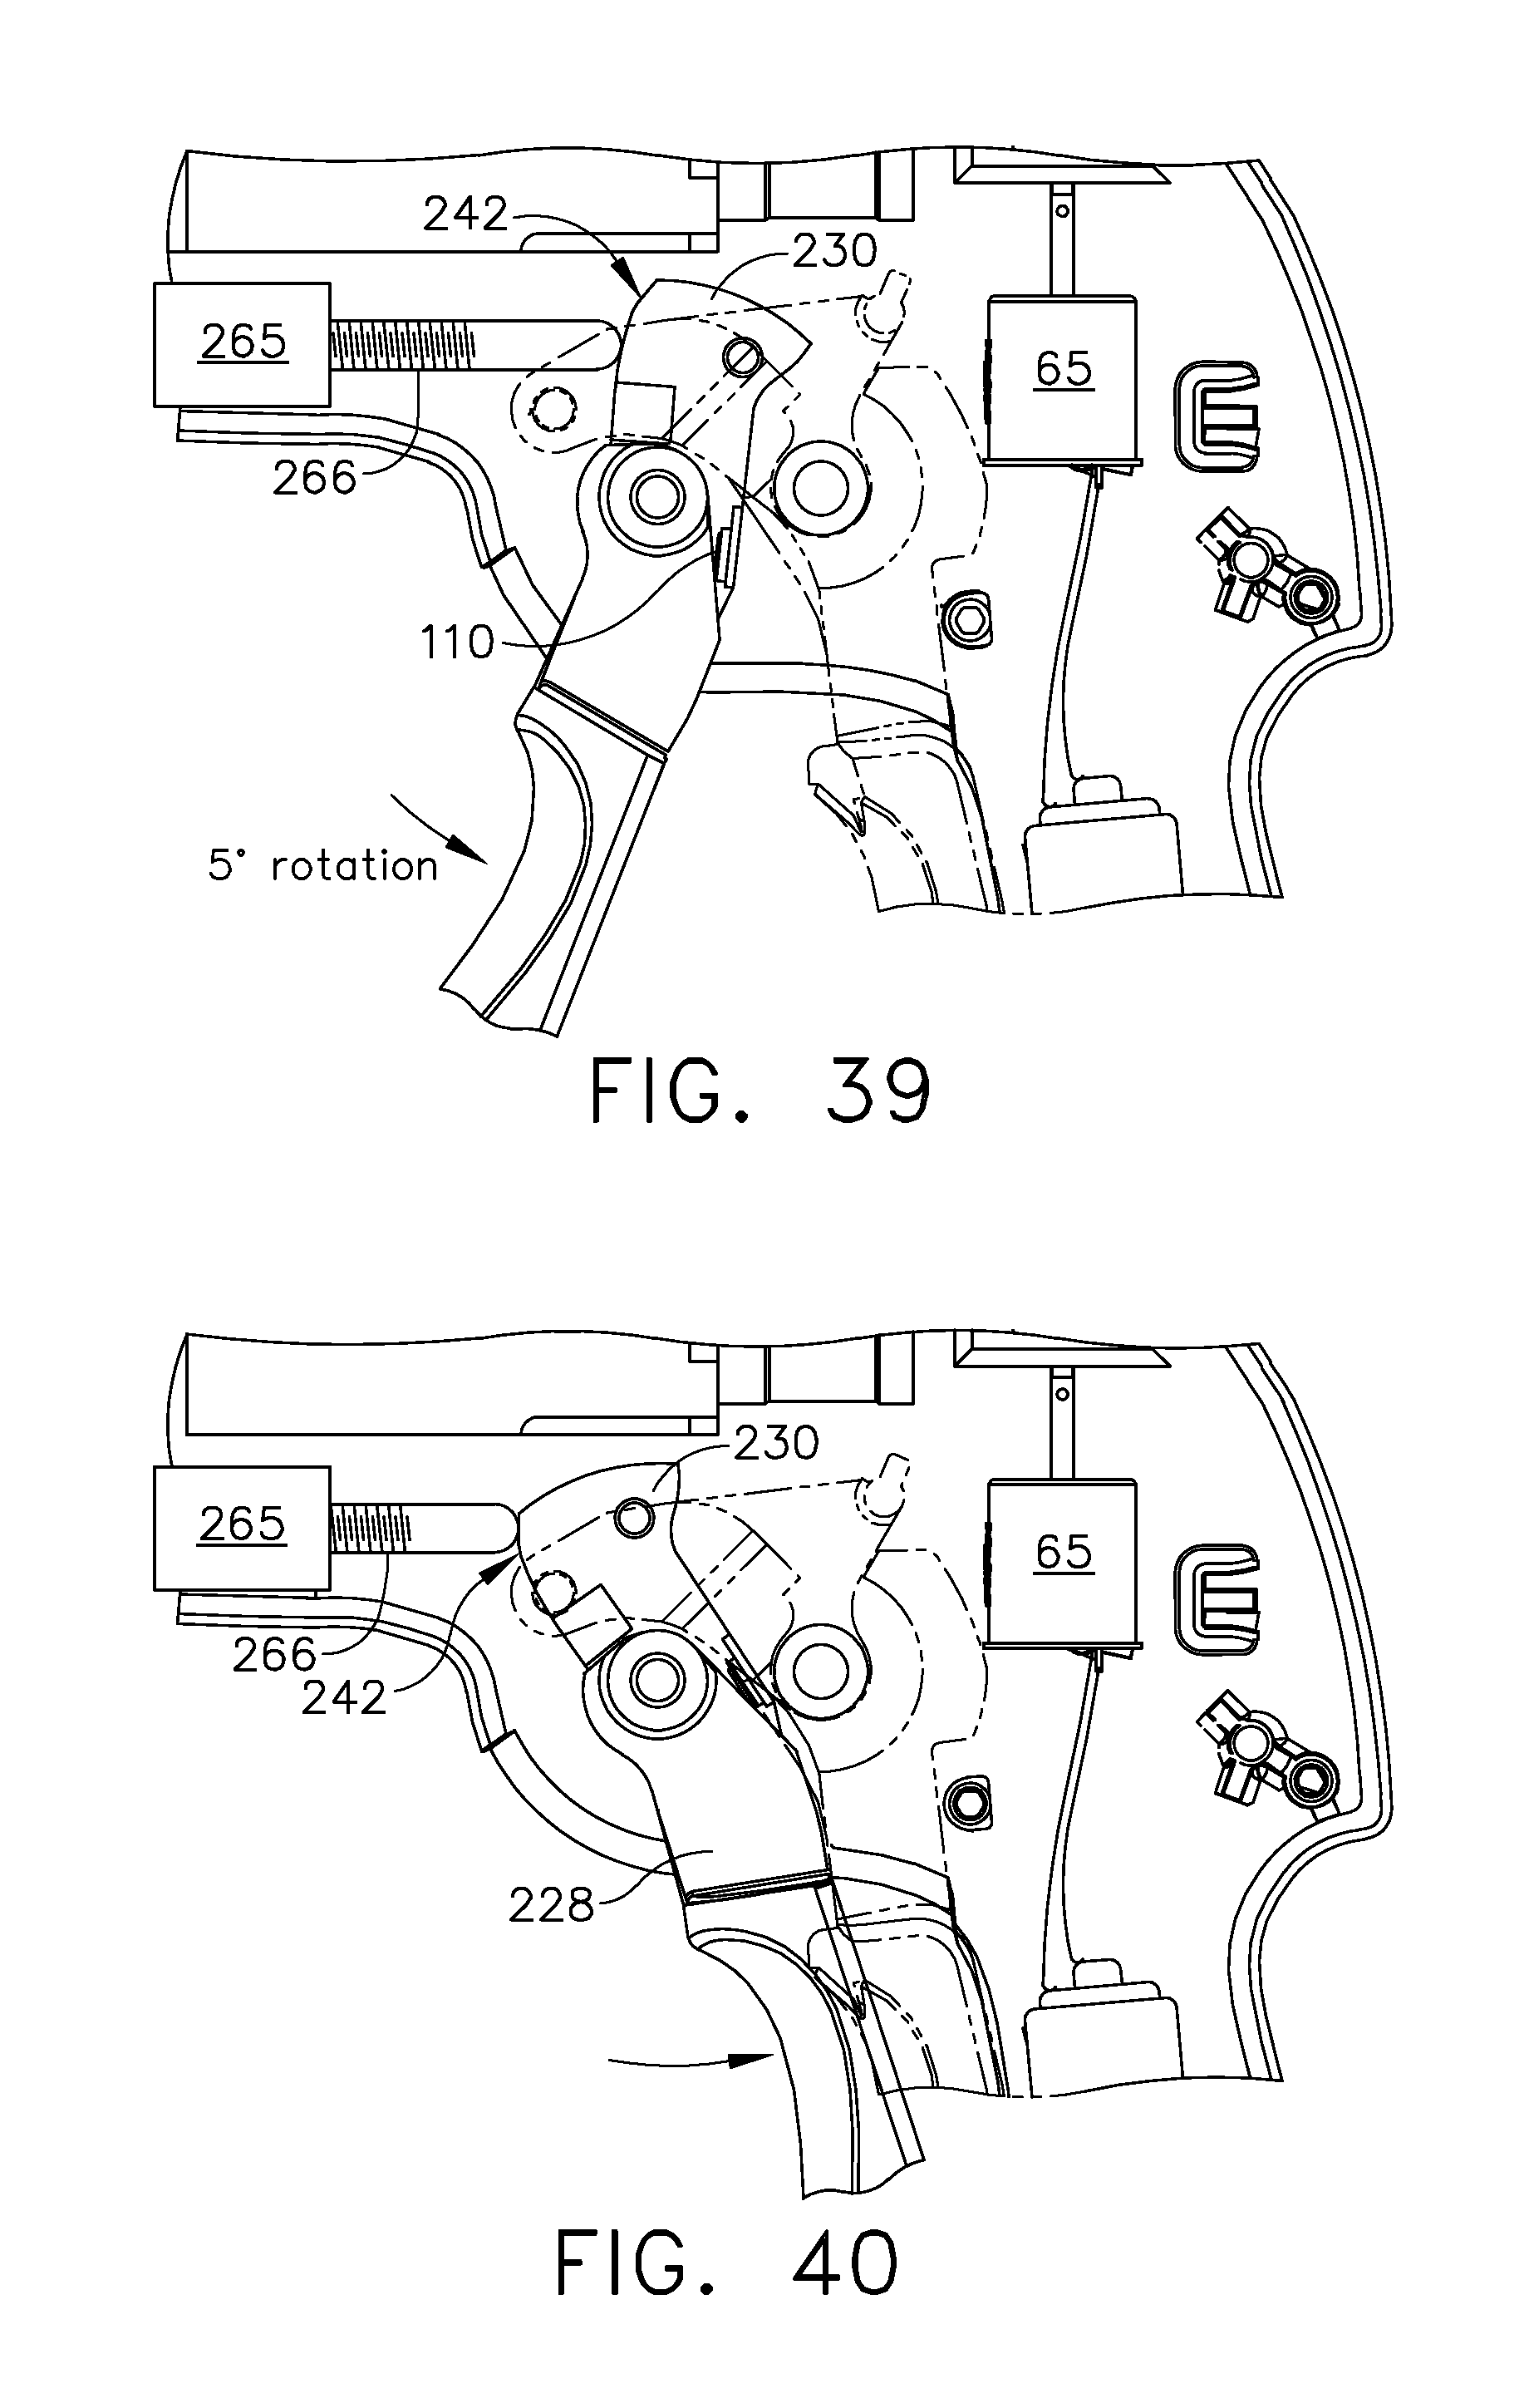 Us8292155b2 Motor Driven Surgical Cutting And Fastening Instrument Starion Engine Diagram With Tactile Position Feedback Google Patents